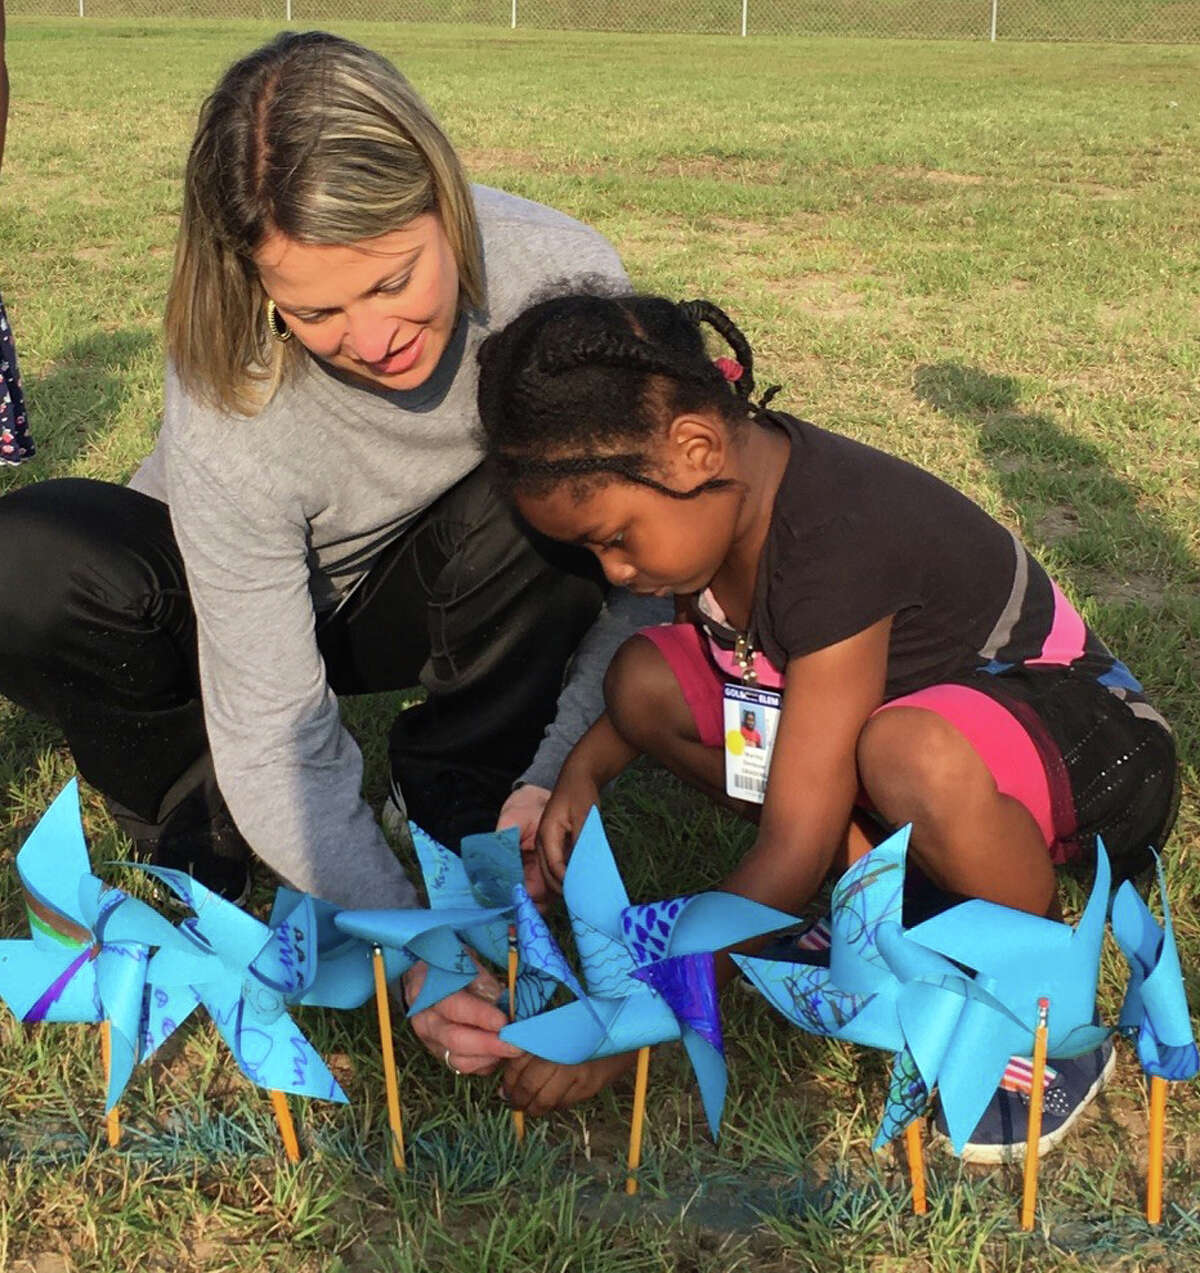 Golbow Elementary School physical education aideShana Robisch helps kindergartner Mercy Denbow place her pinwheel as part of the